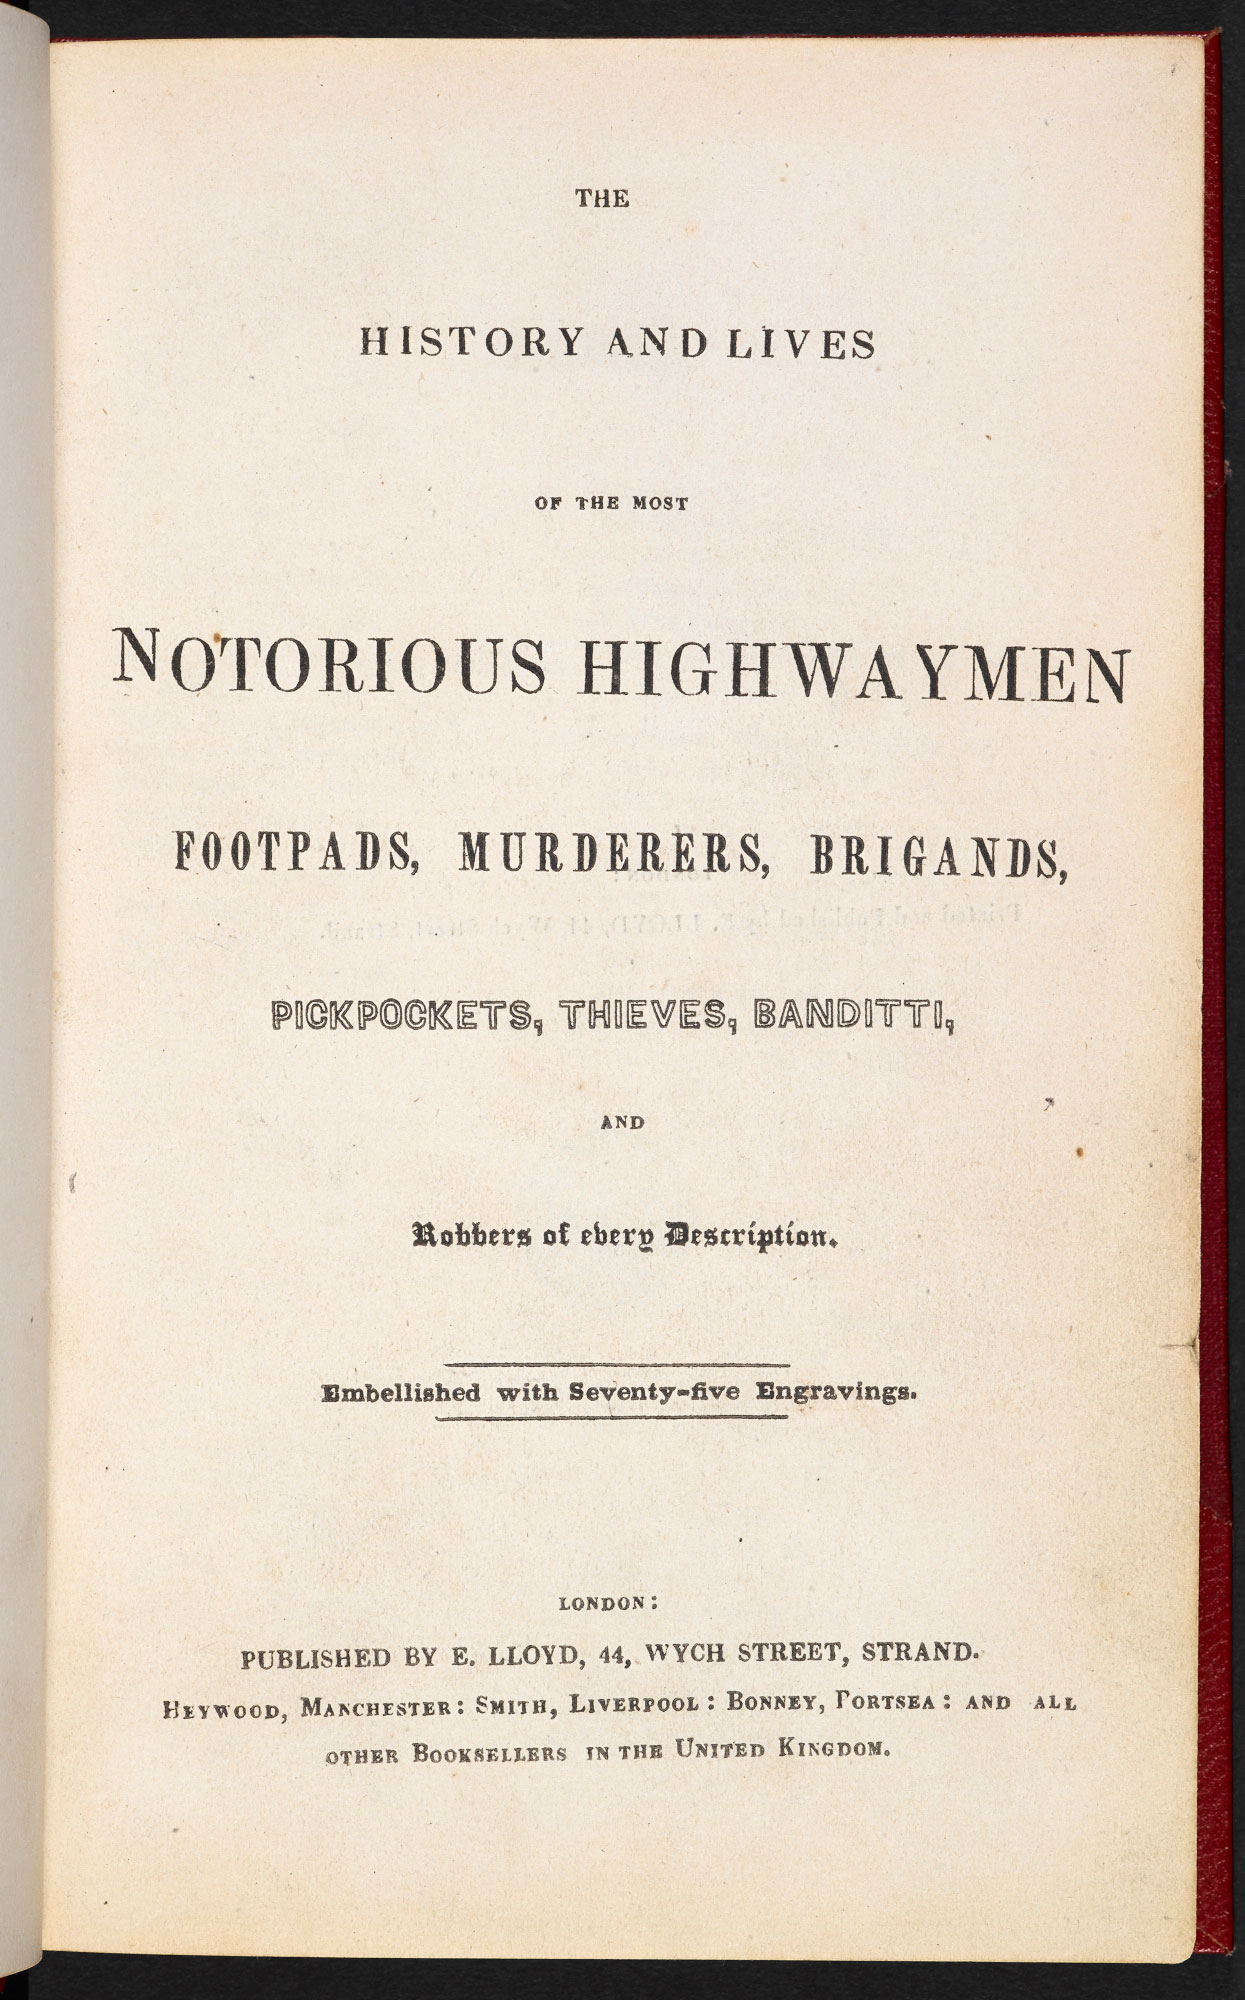 Lives of the most notorious highwaymen, footpads and murderers